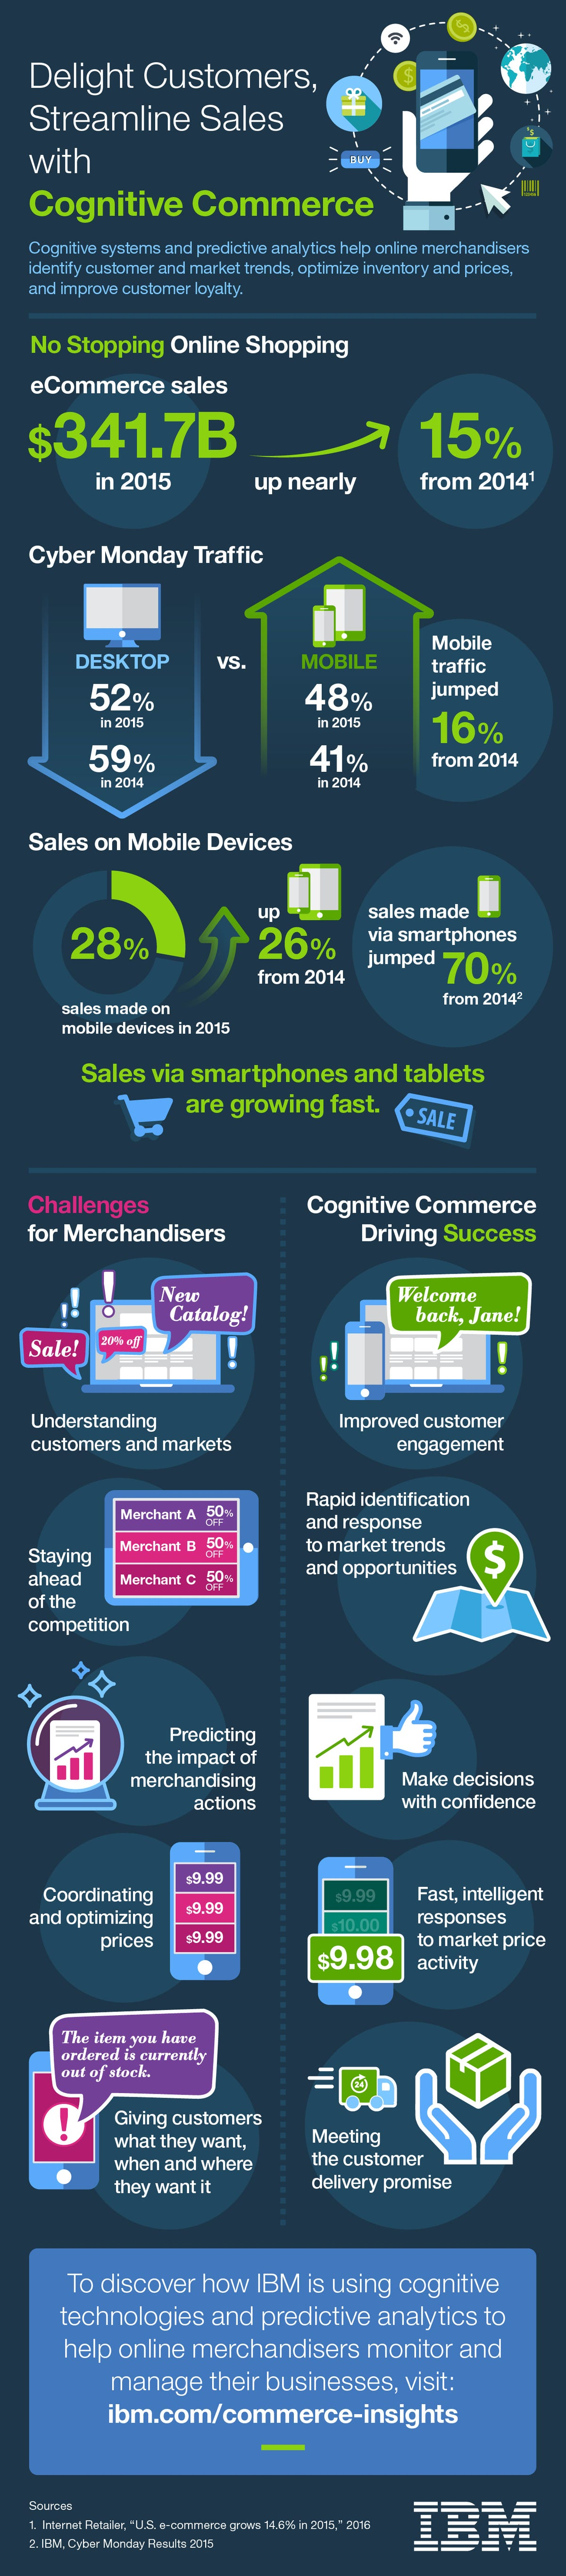 cbsiibminfographiccognitivecommerceupdated.jpg